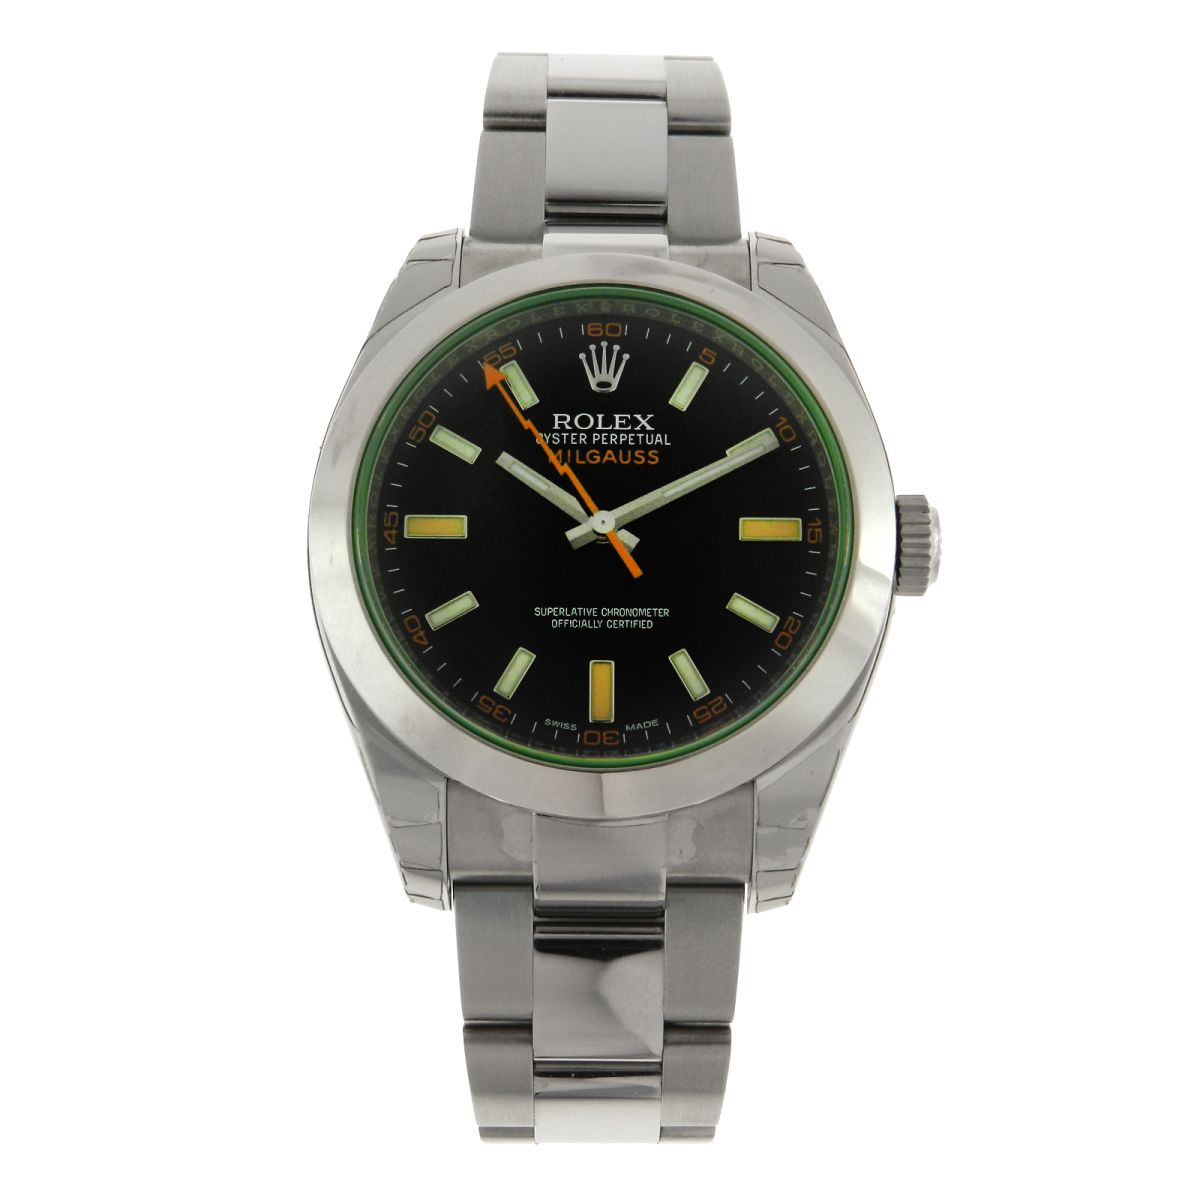 3ef4c053144 Relógio Rolex Oyster Perpetual Milgauss – Referencia 116400GV – Green –  Melhores Lotes